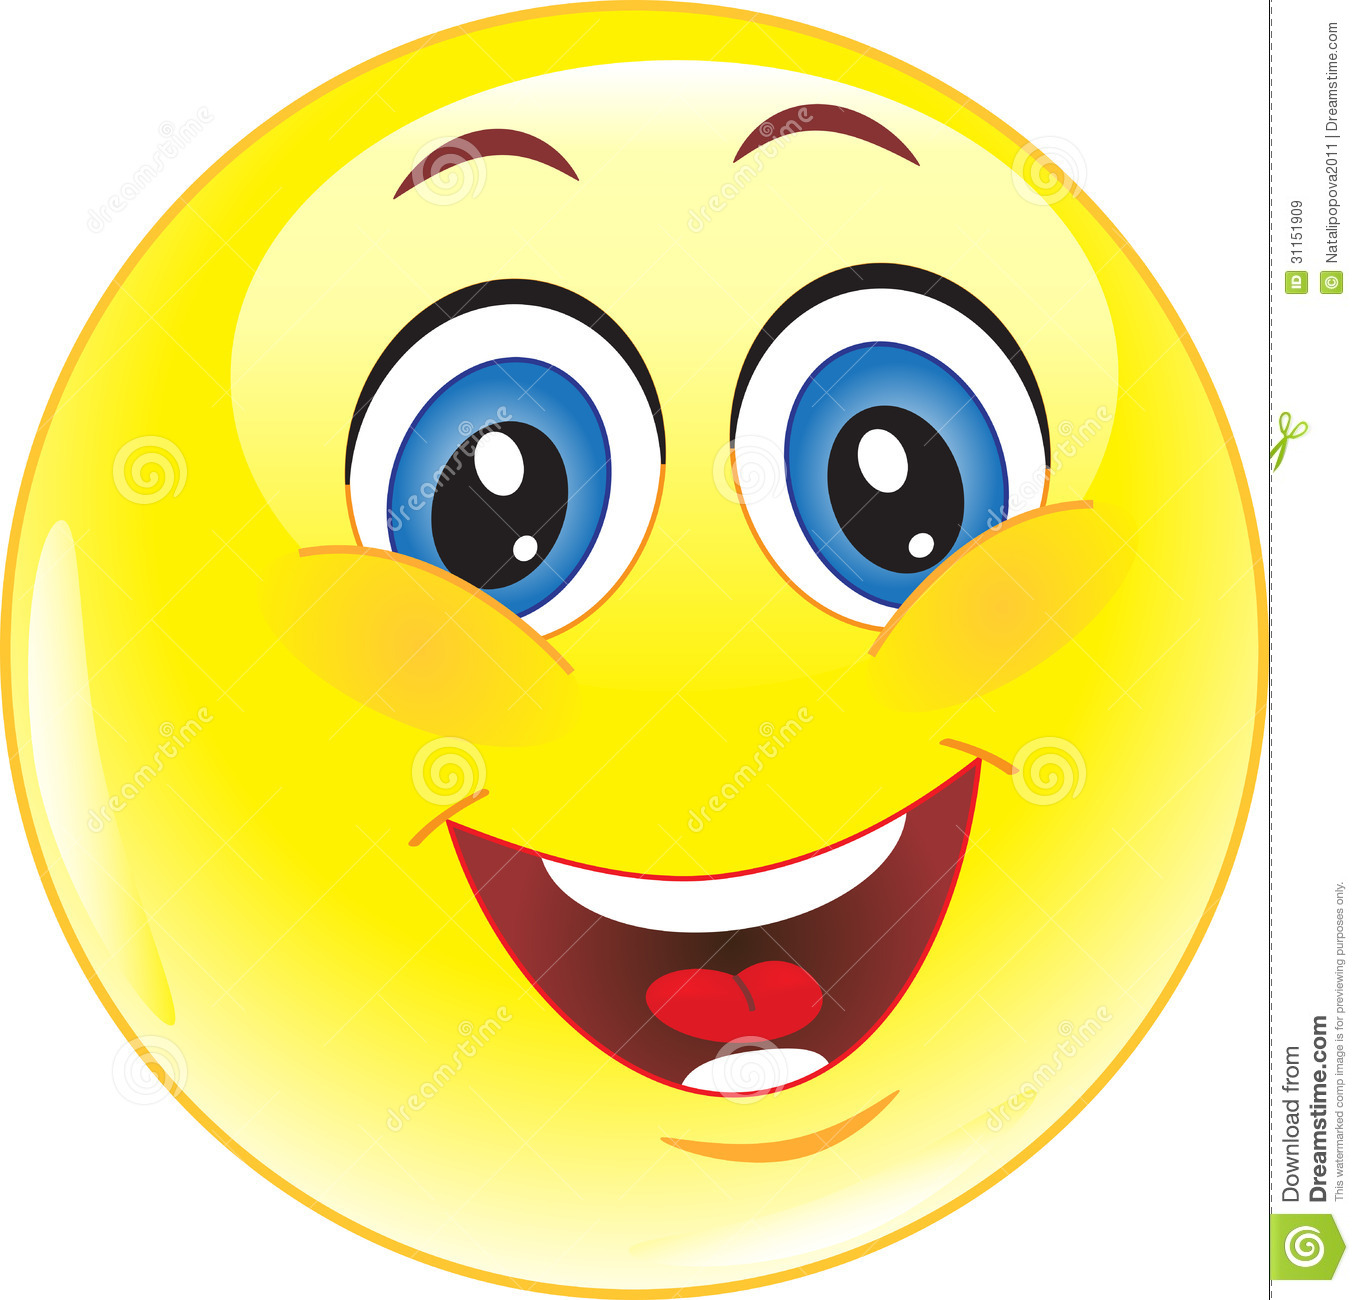 Smile Happiness Smile Royalty Free Stock Images Image